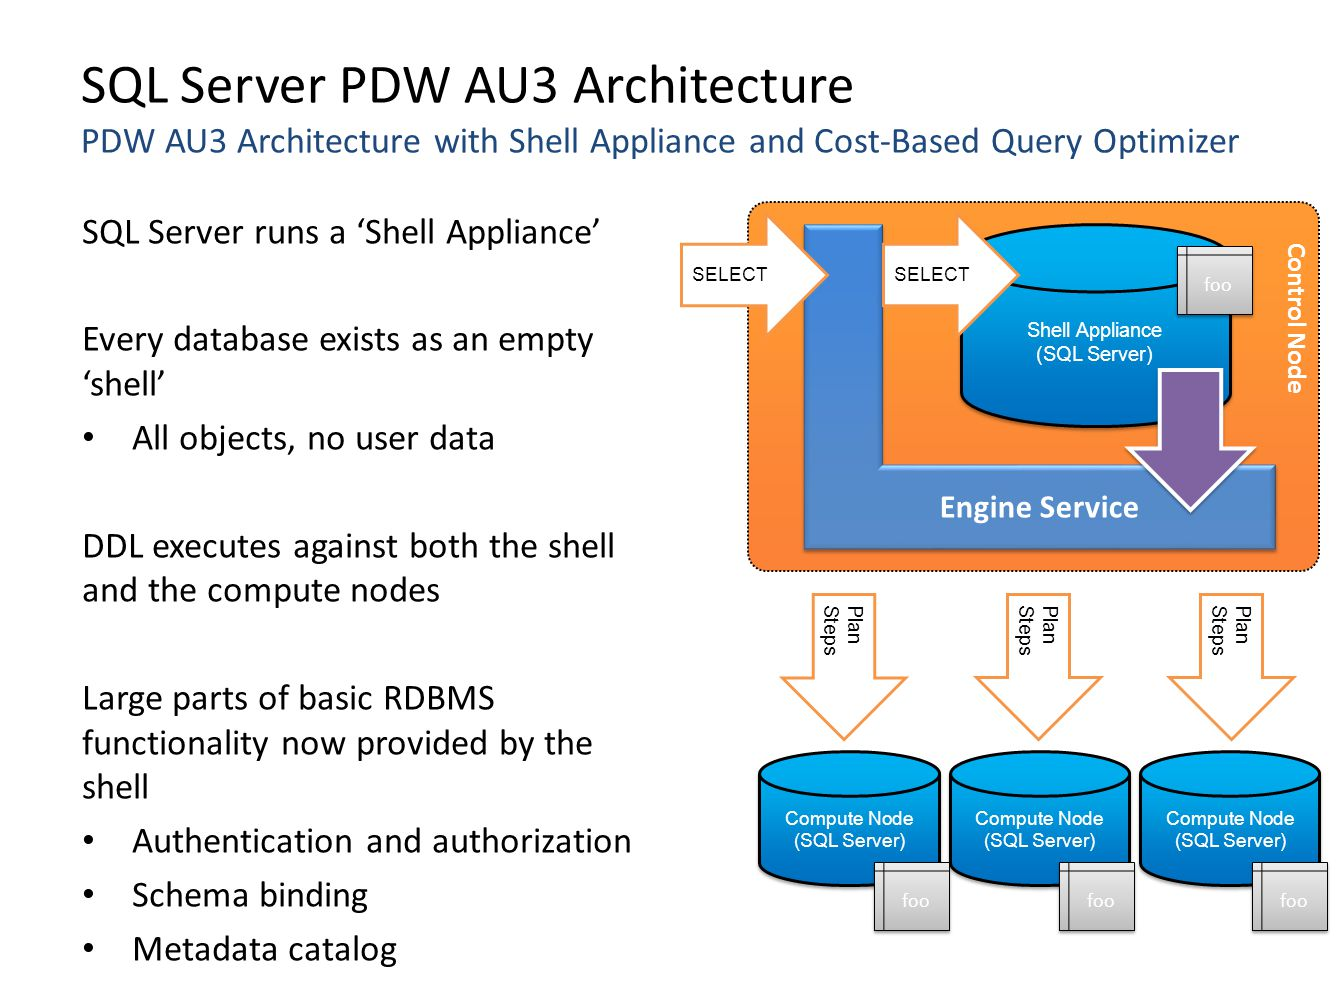 SQL Server PDW AU3 Architecture PDW AU3 Architecture with Shell Appliance and Cost-Based Query Optimizer SQL Server runs a 'Shell Appliance' Every database exists as an empty 'shell' All objects, no user data DDL executes against both the shell and the compute nodes Large parts of basic RDBMS functionality now provided by the shell Authentication and authorization Schema binding Metadata catalog Shell Appliance (SQL Server) Shell Appliance (SQL Server) Engine Service Plan Steps Compute Node (SQL Server) Compute Node (SQL Server) Compute Node (SQL Server) Compute Node (SQL Server) Compute Node (SQL Server) Compute Node (SQL Server) Control Node SELECT foo